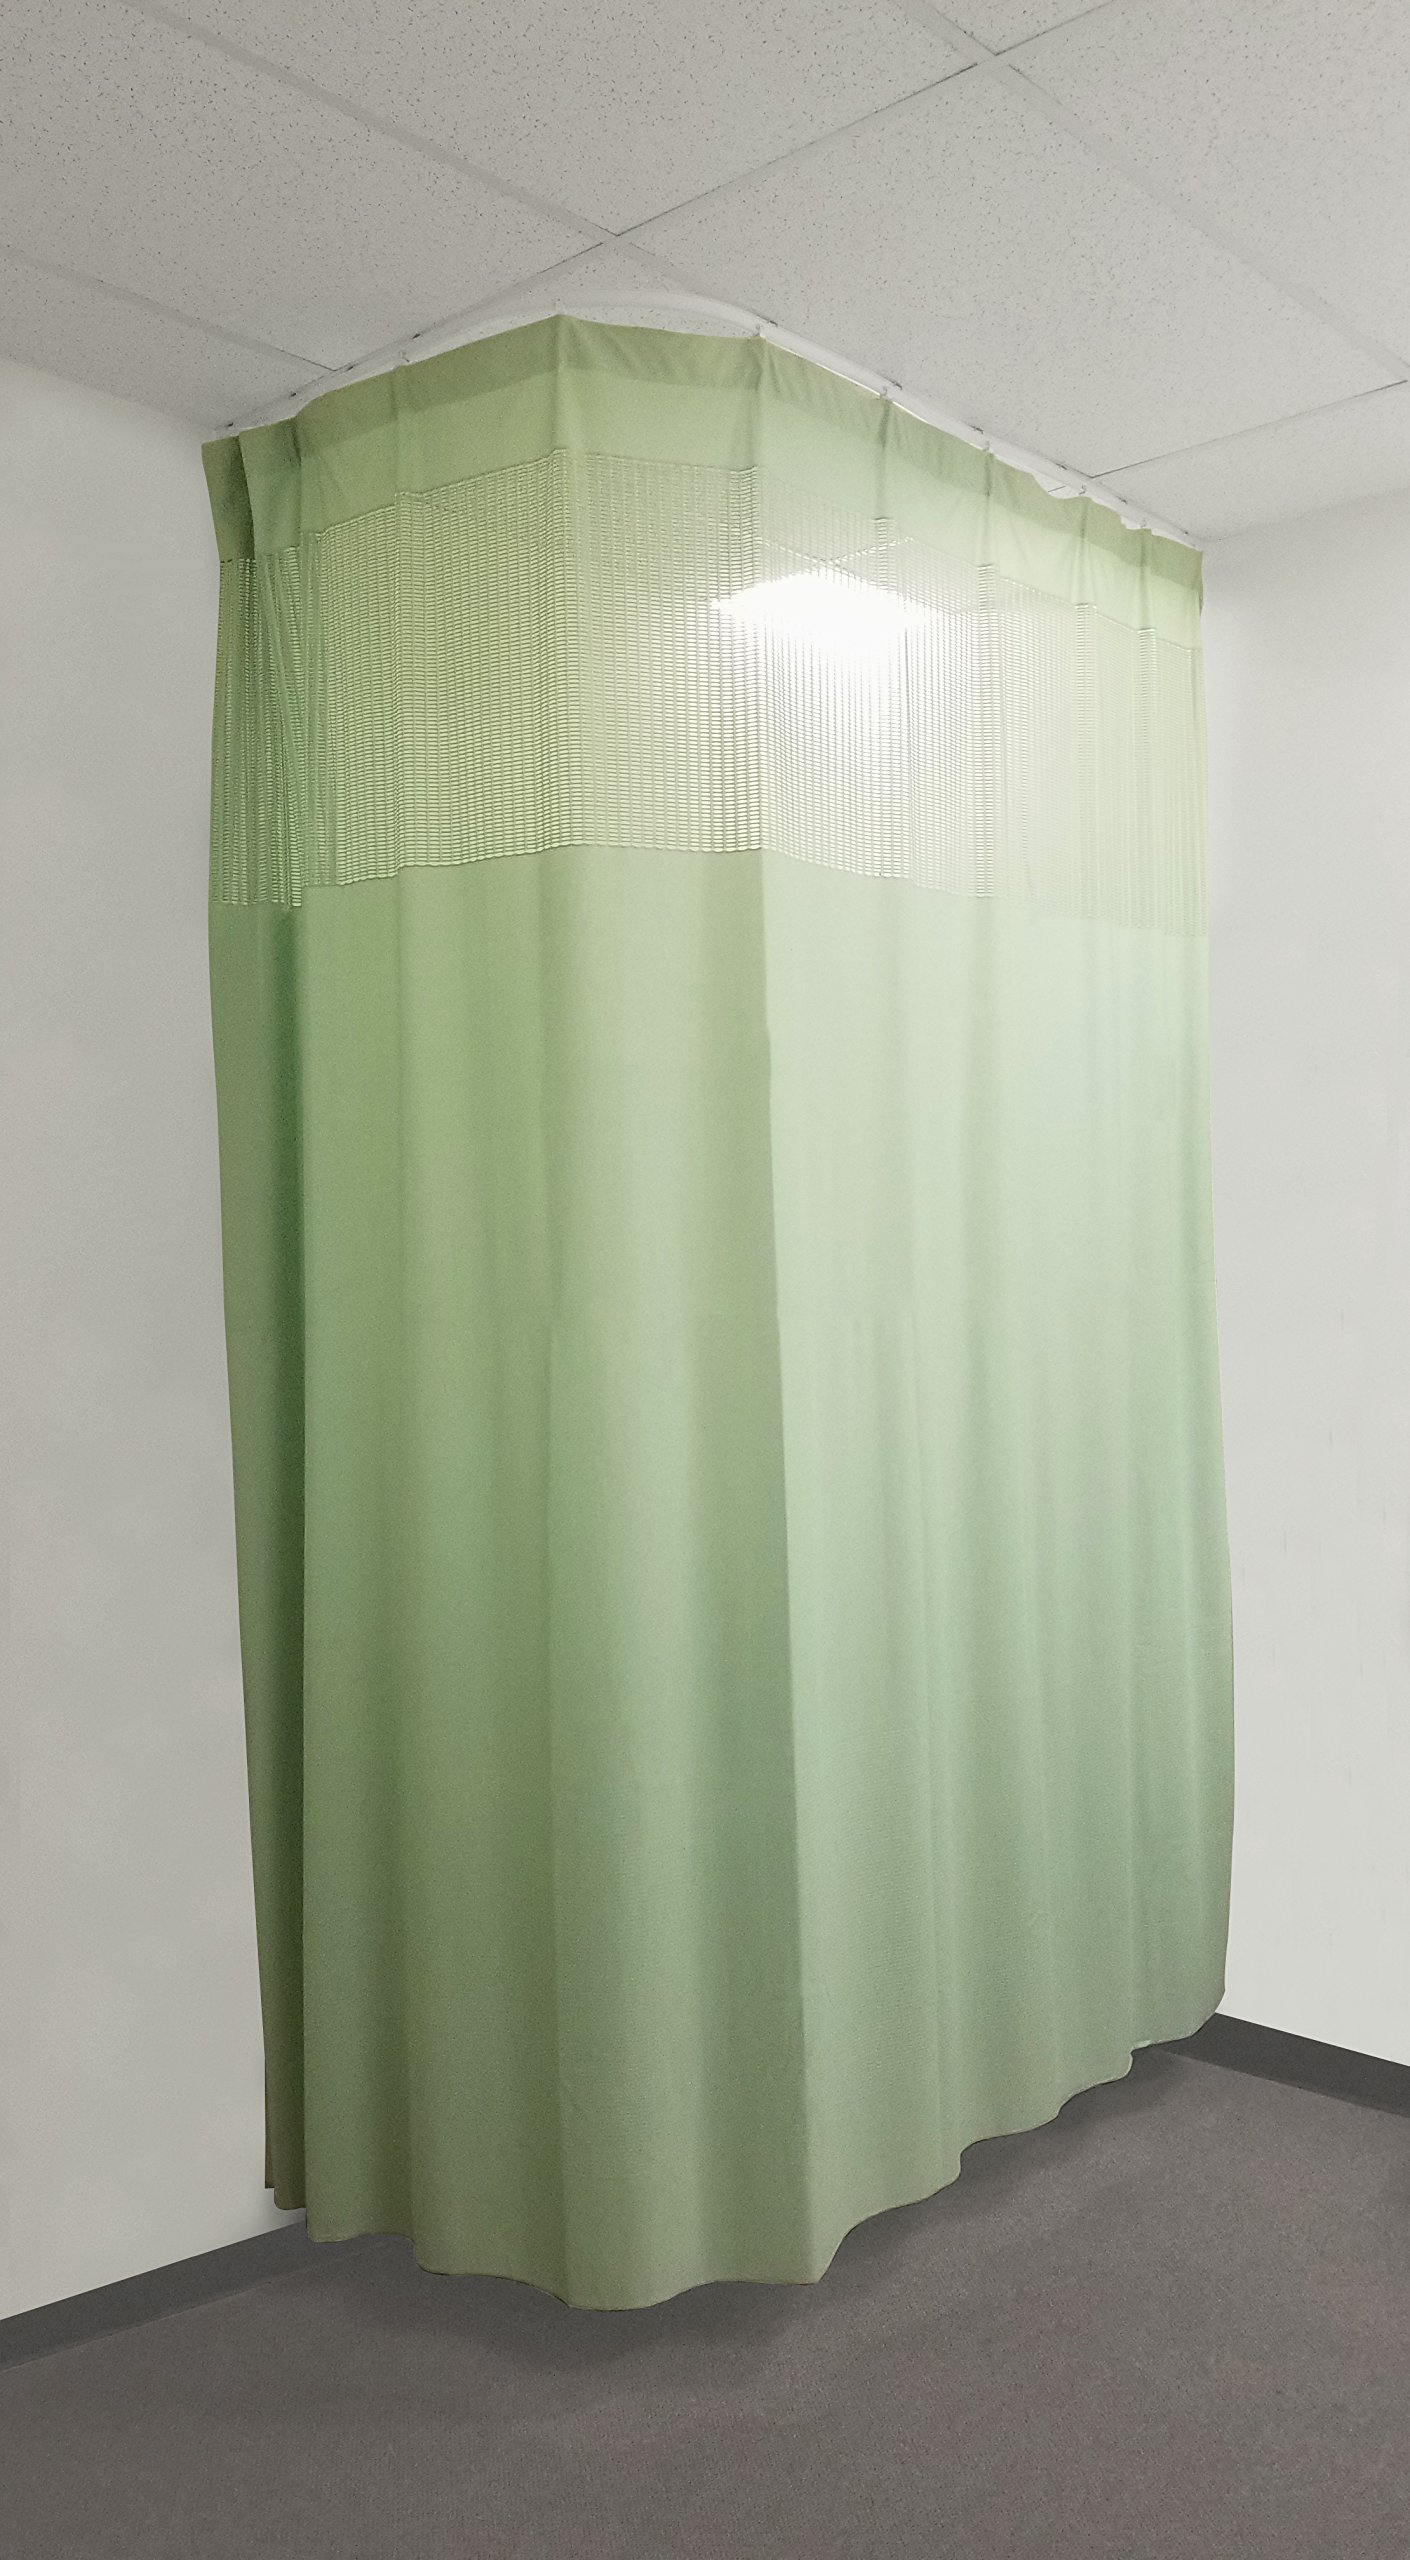 TOA Supply 8ft Medical Curtains w/Track Hospital Lab Clinic Room- 10ft High (Green) by TOA Supply